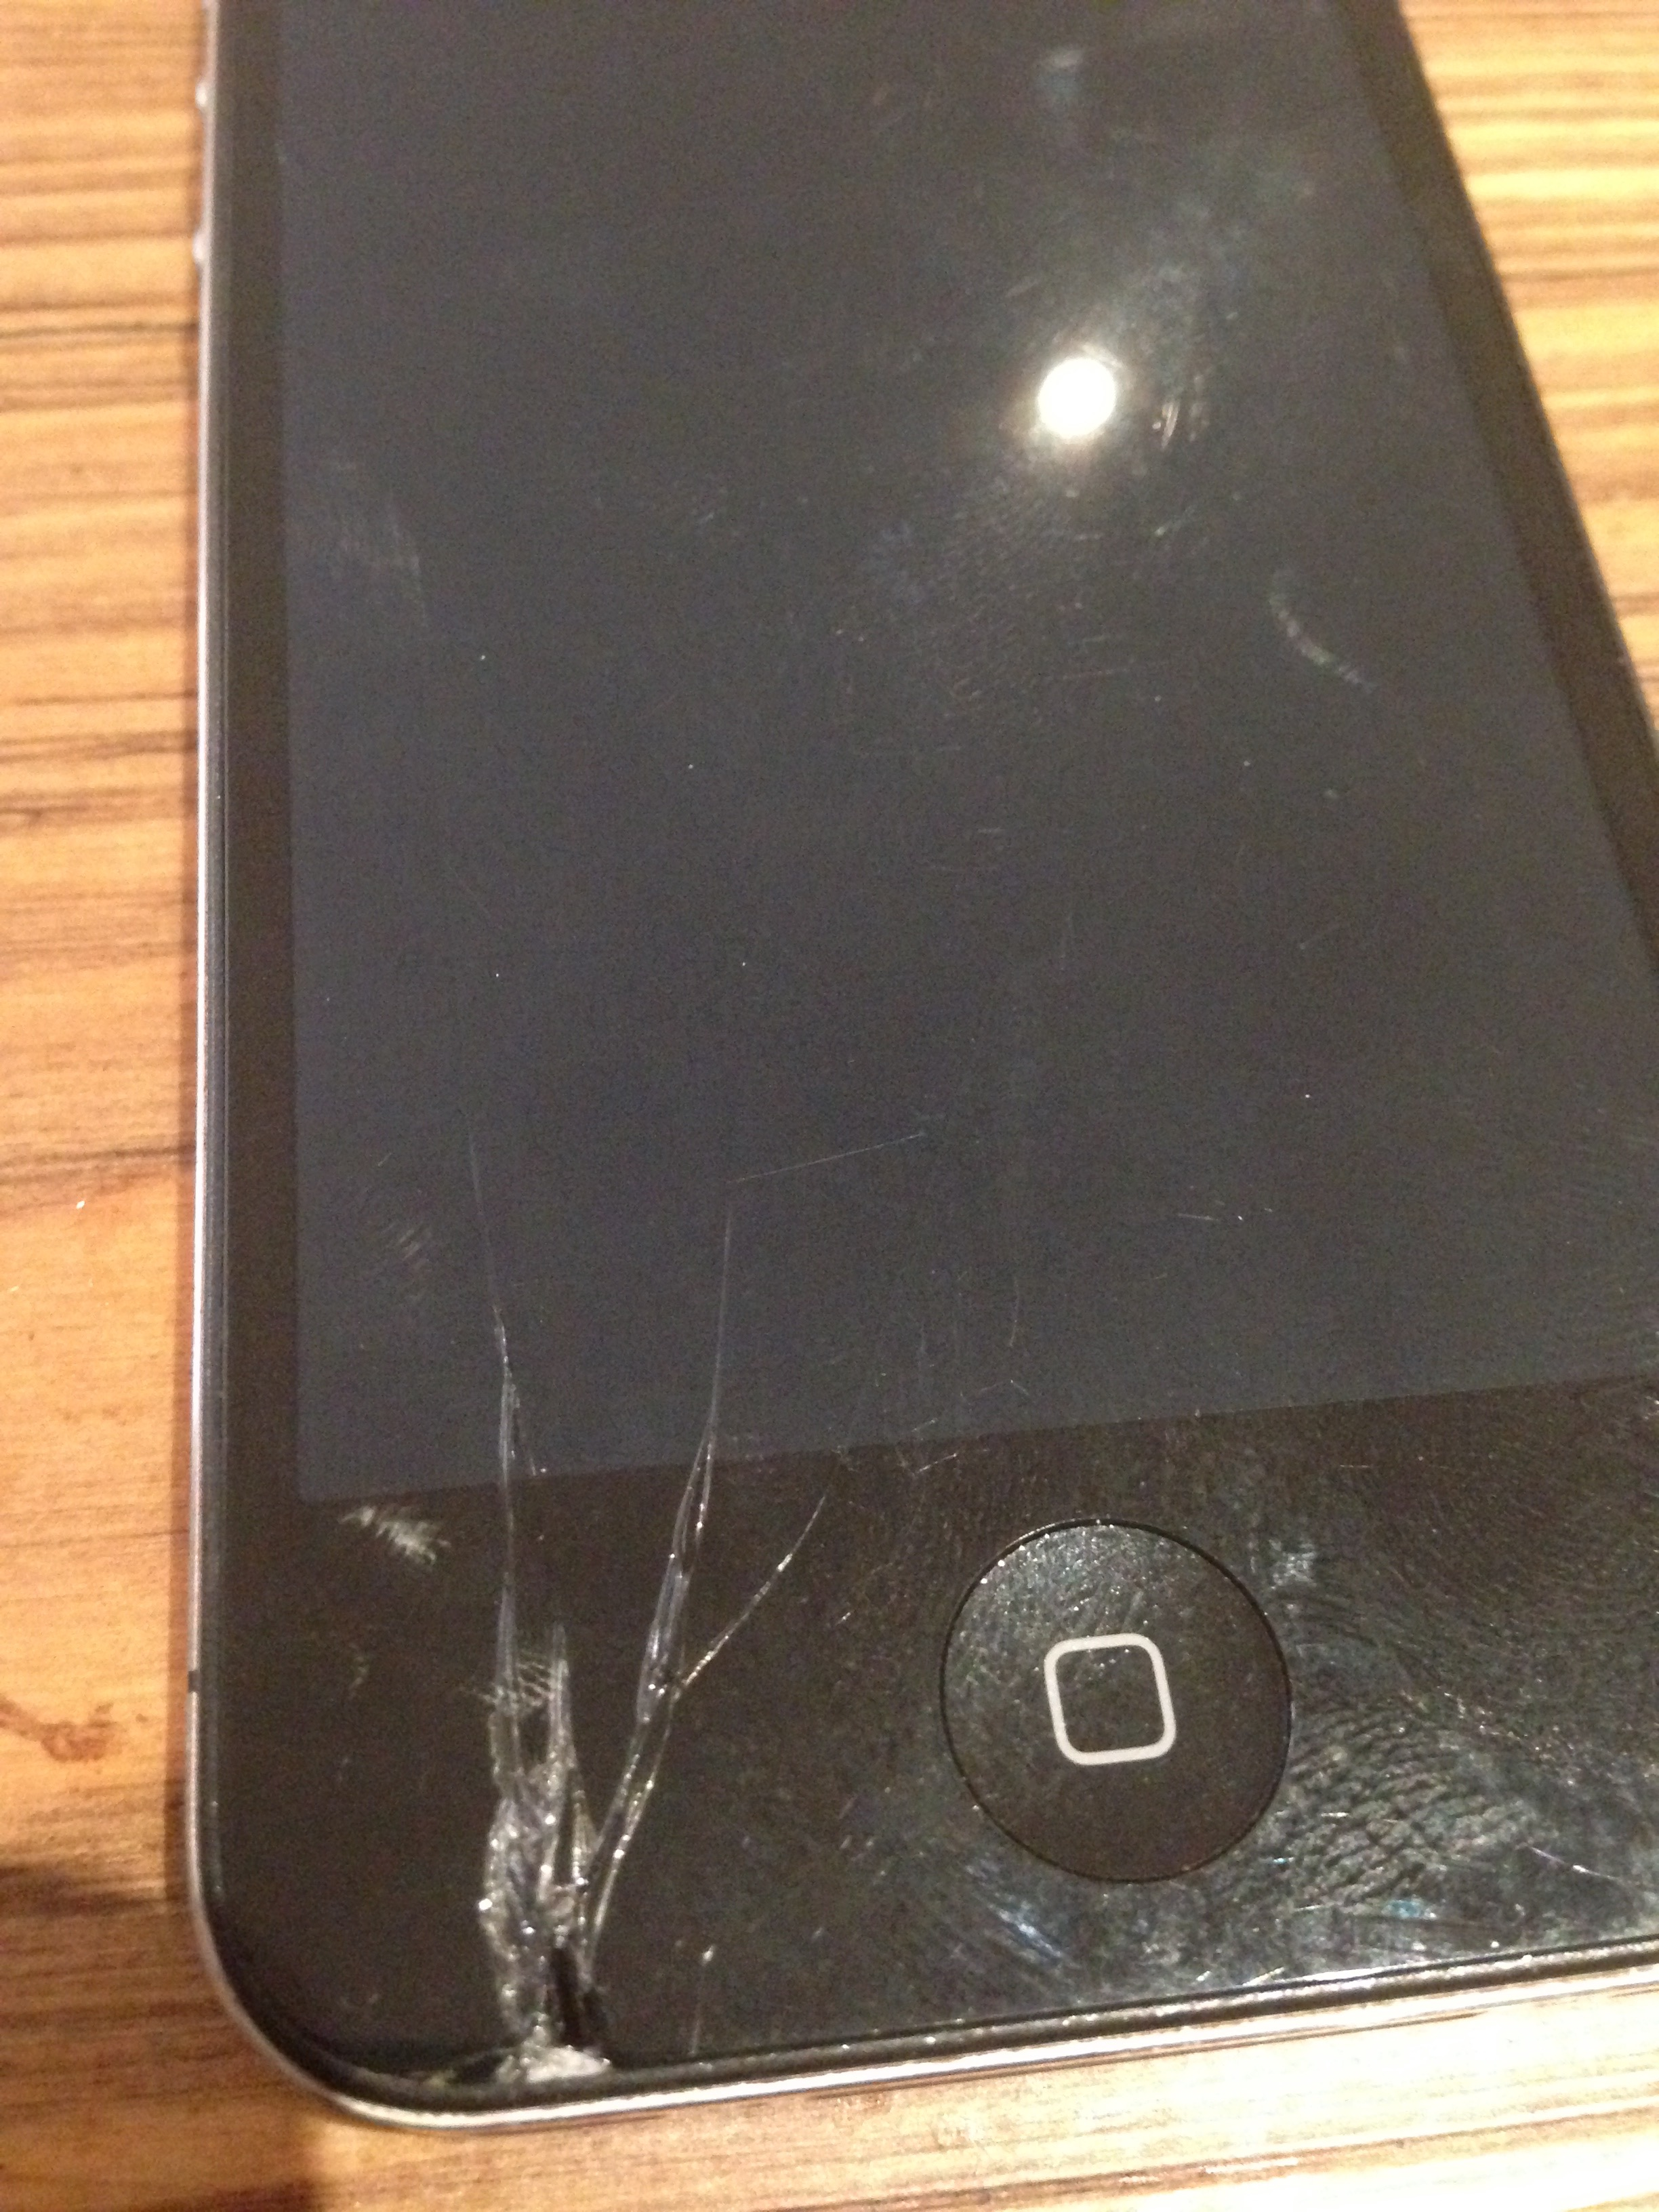 Cracked iPhone Repair? That's What I'm Talking About…